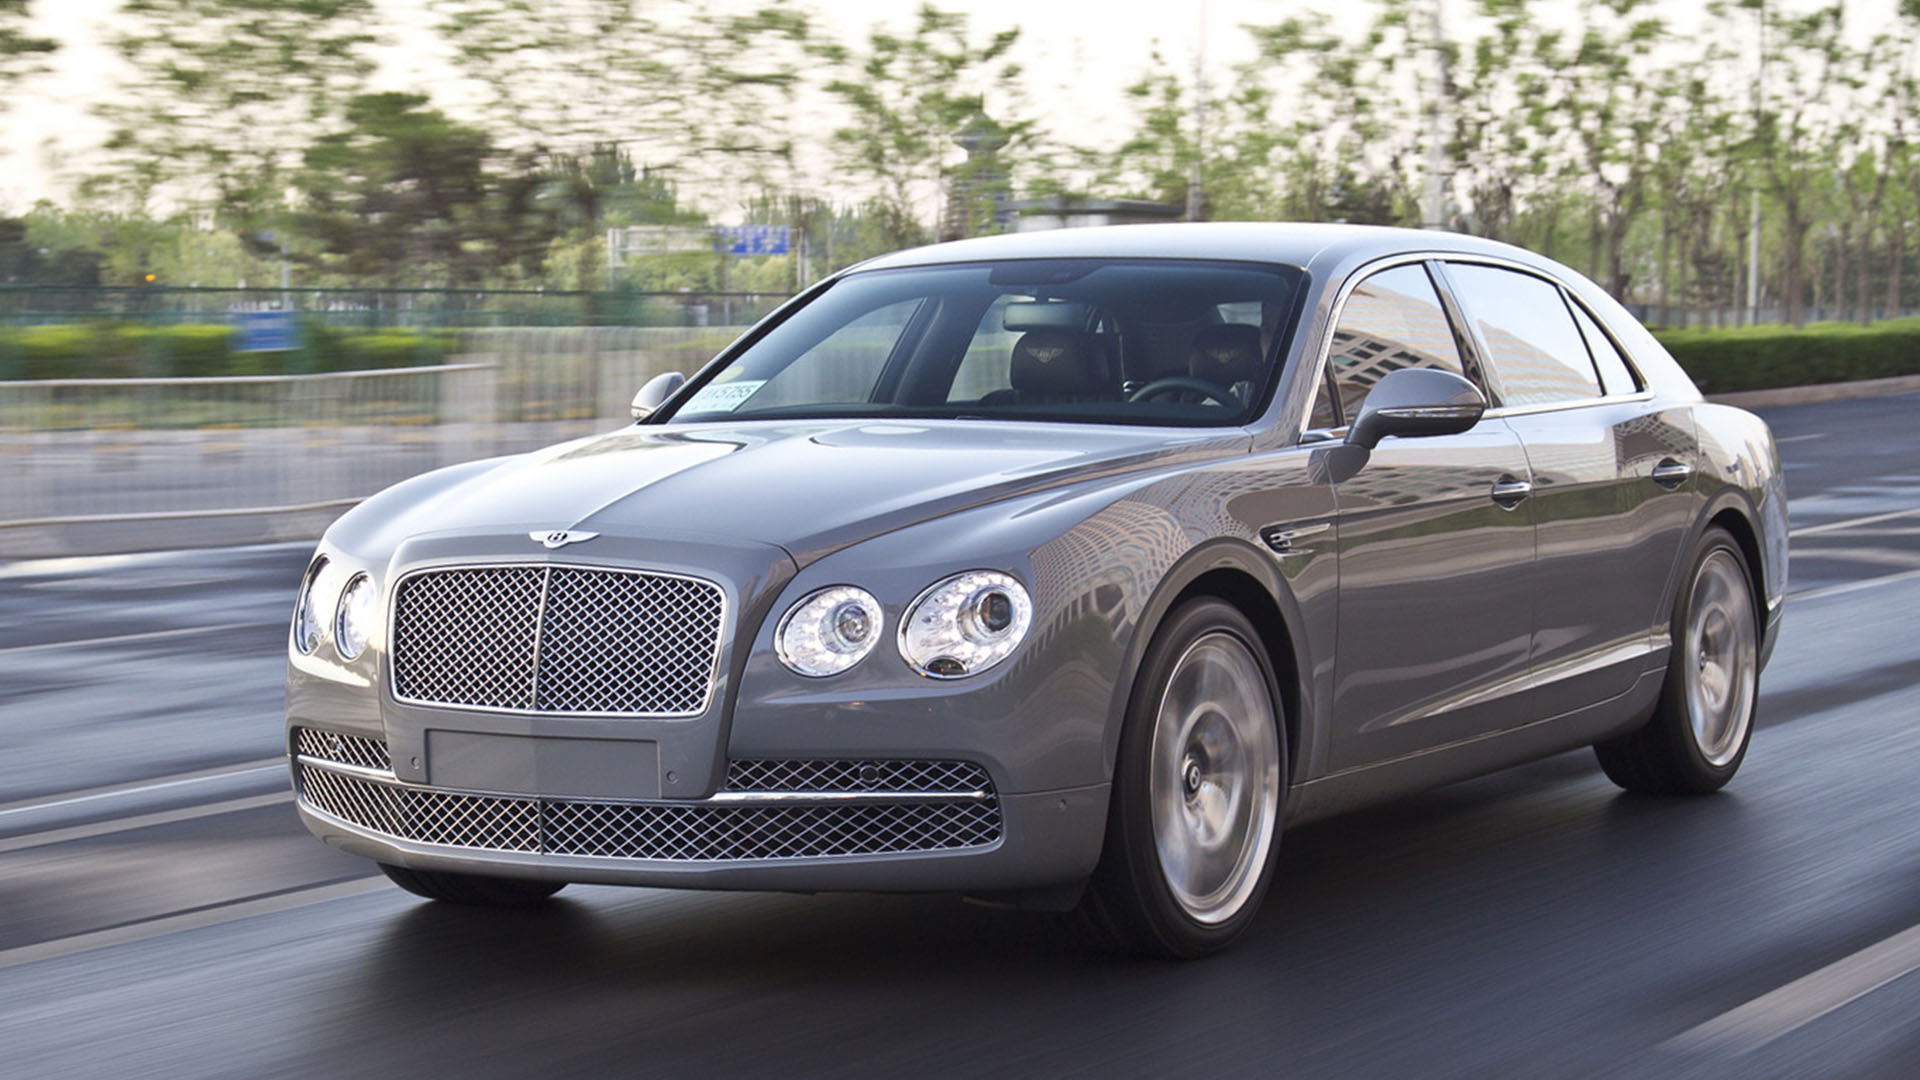 hire chauffeur bentley flying spur in london